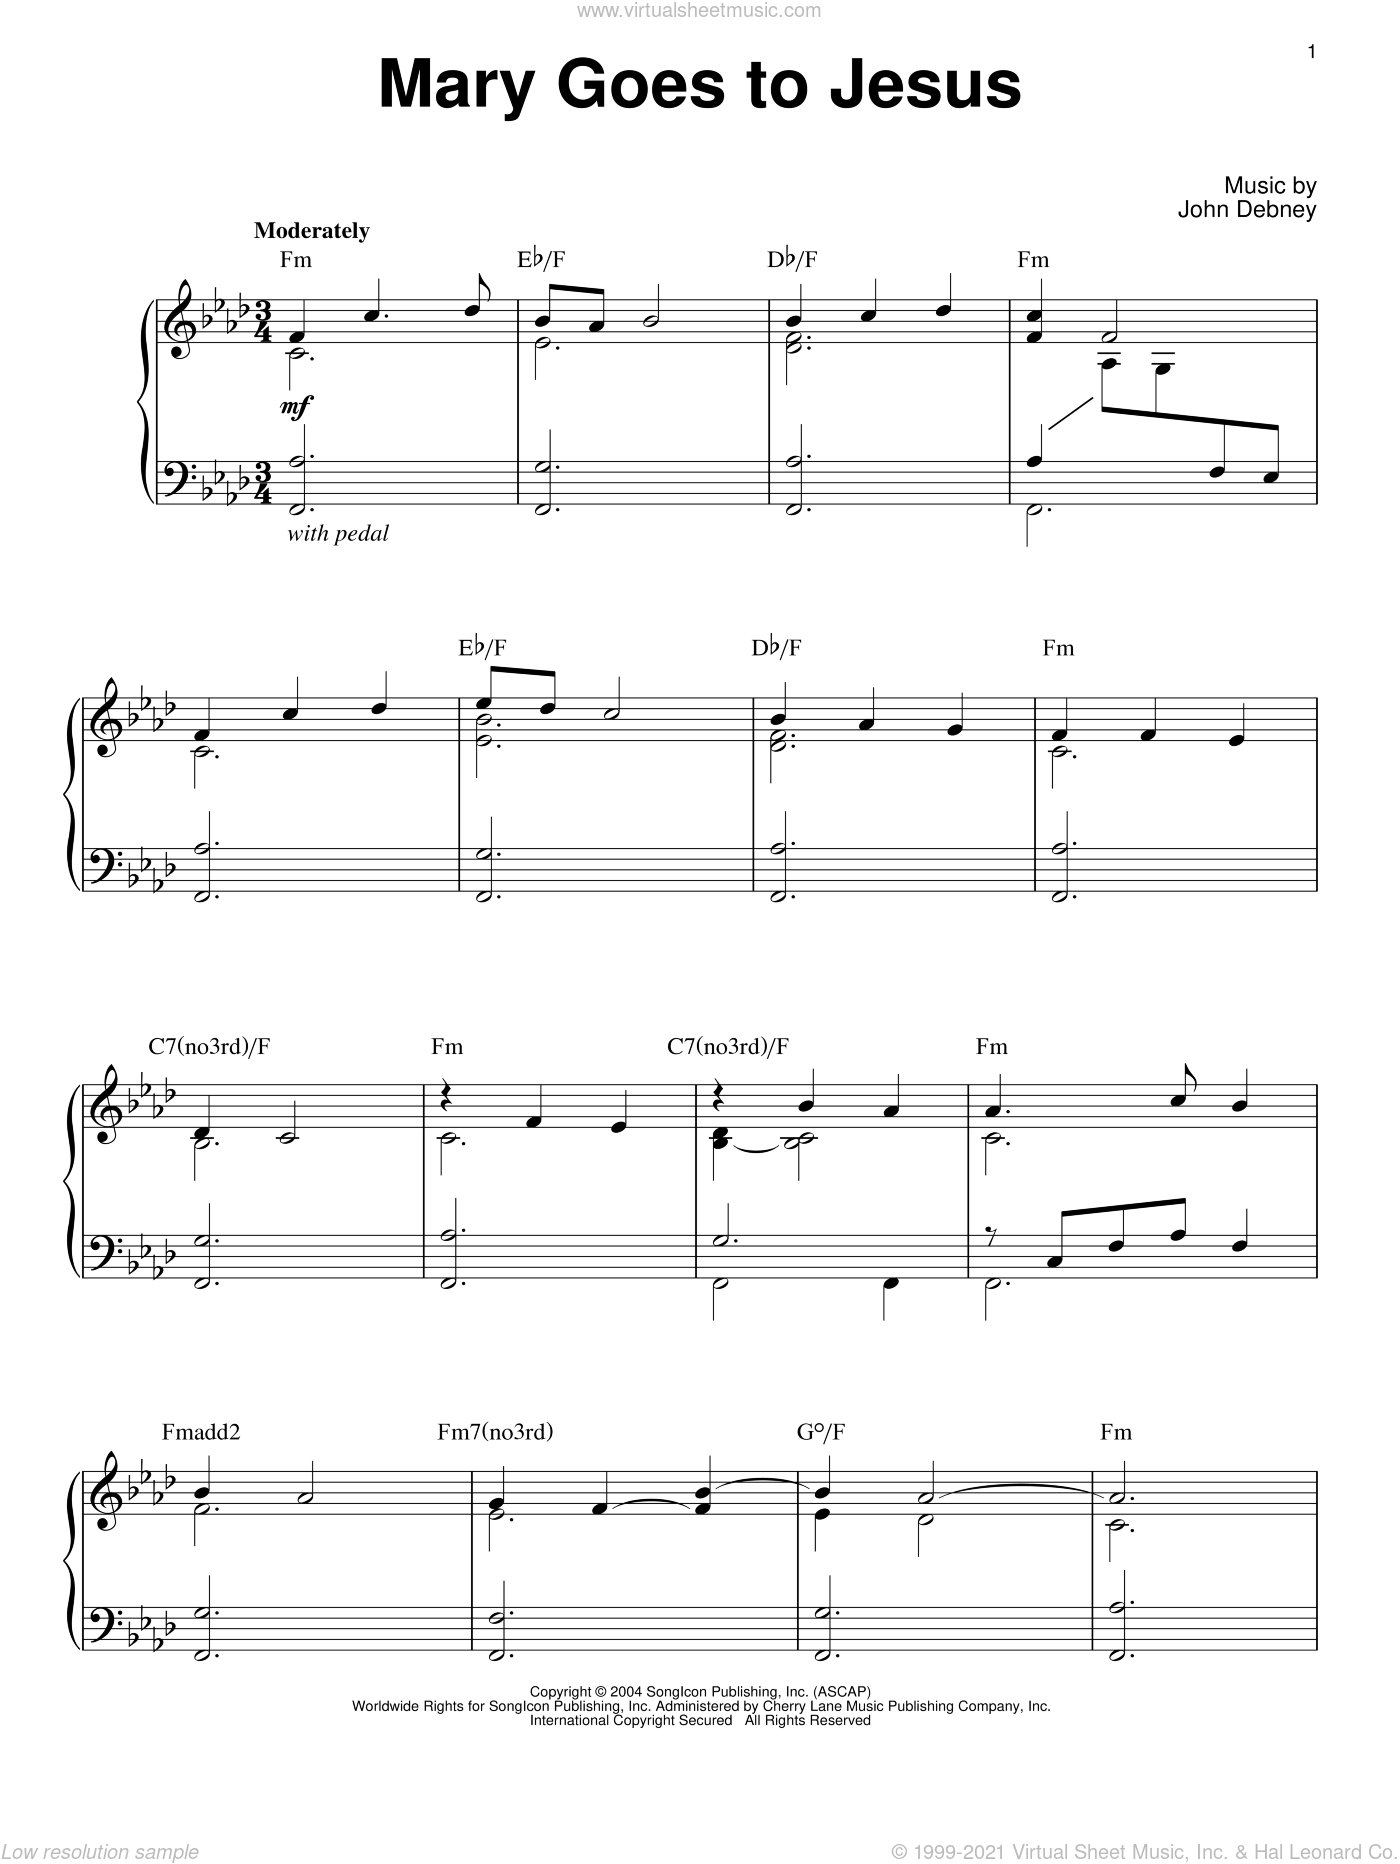 Mary Goes To Jesus sheet music for piano solo by John Debney